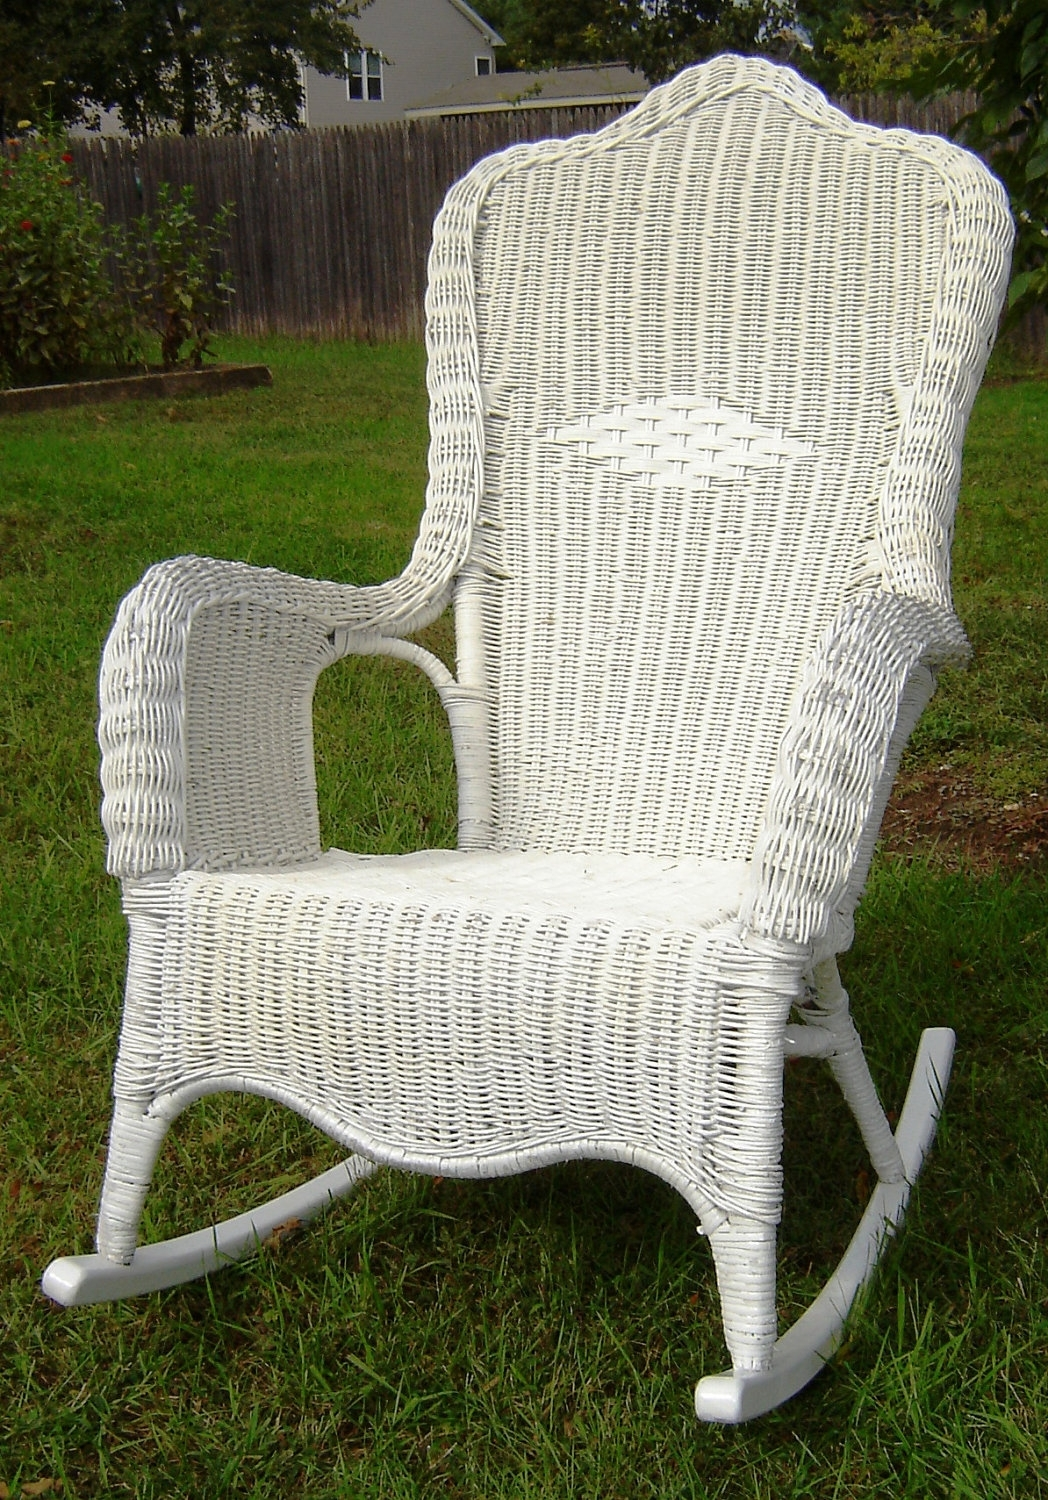 Vintage White Wicker Rocking Chair — Wilson Home Ideas : Choosing A Intended For White Patio Rocking Chairs (#14 of 15)